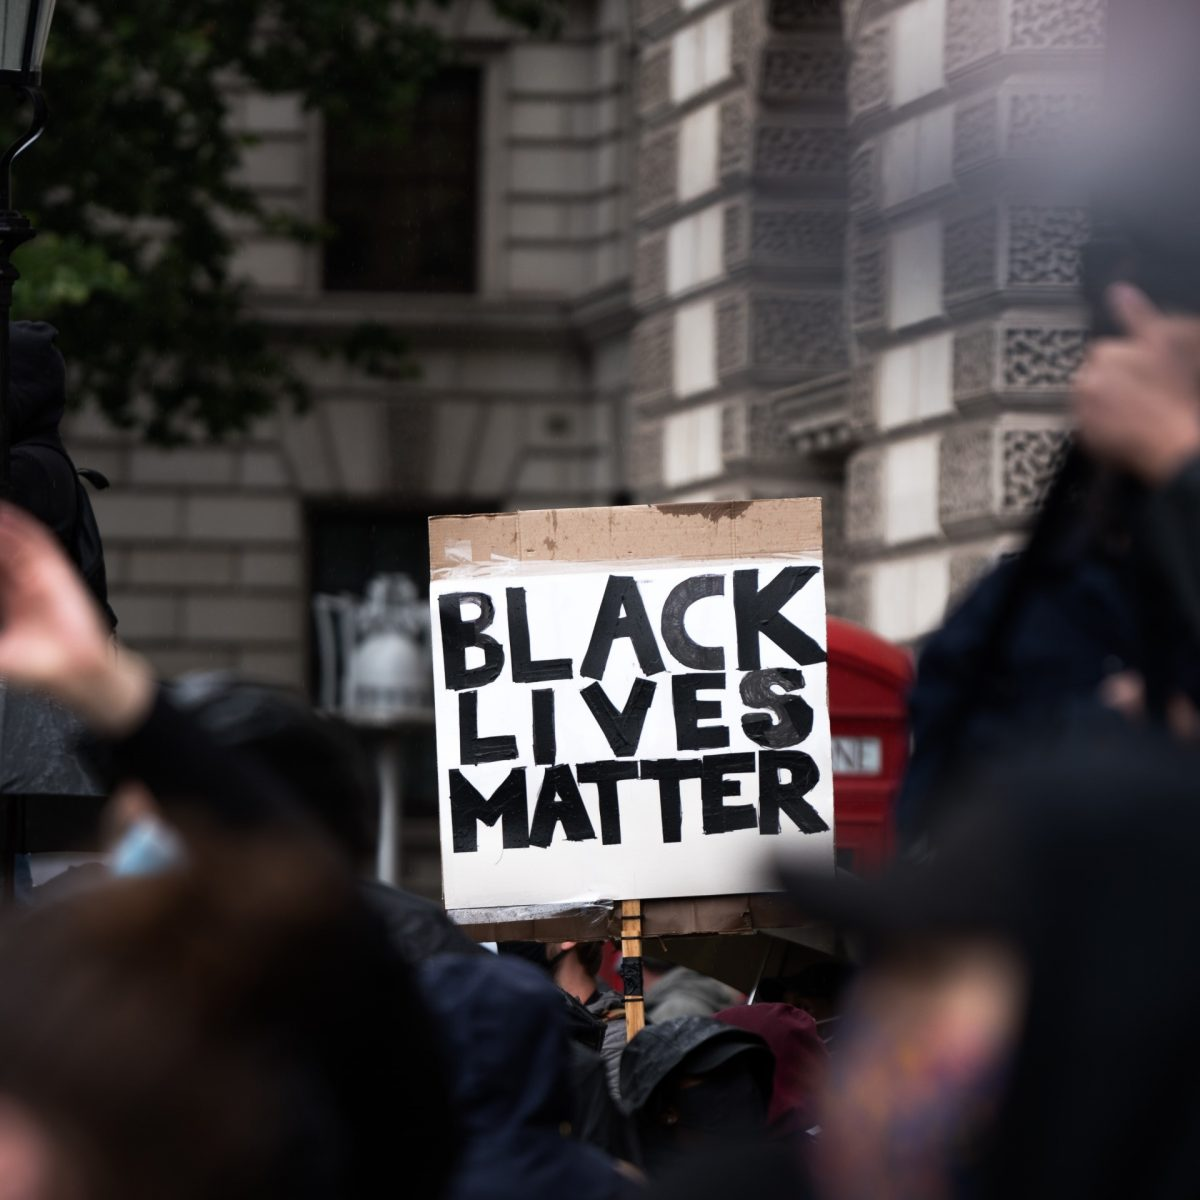 Black British citizens want more than complacency from this government